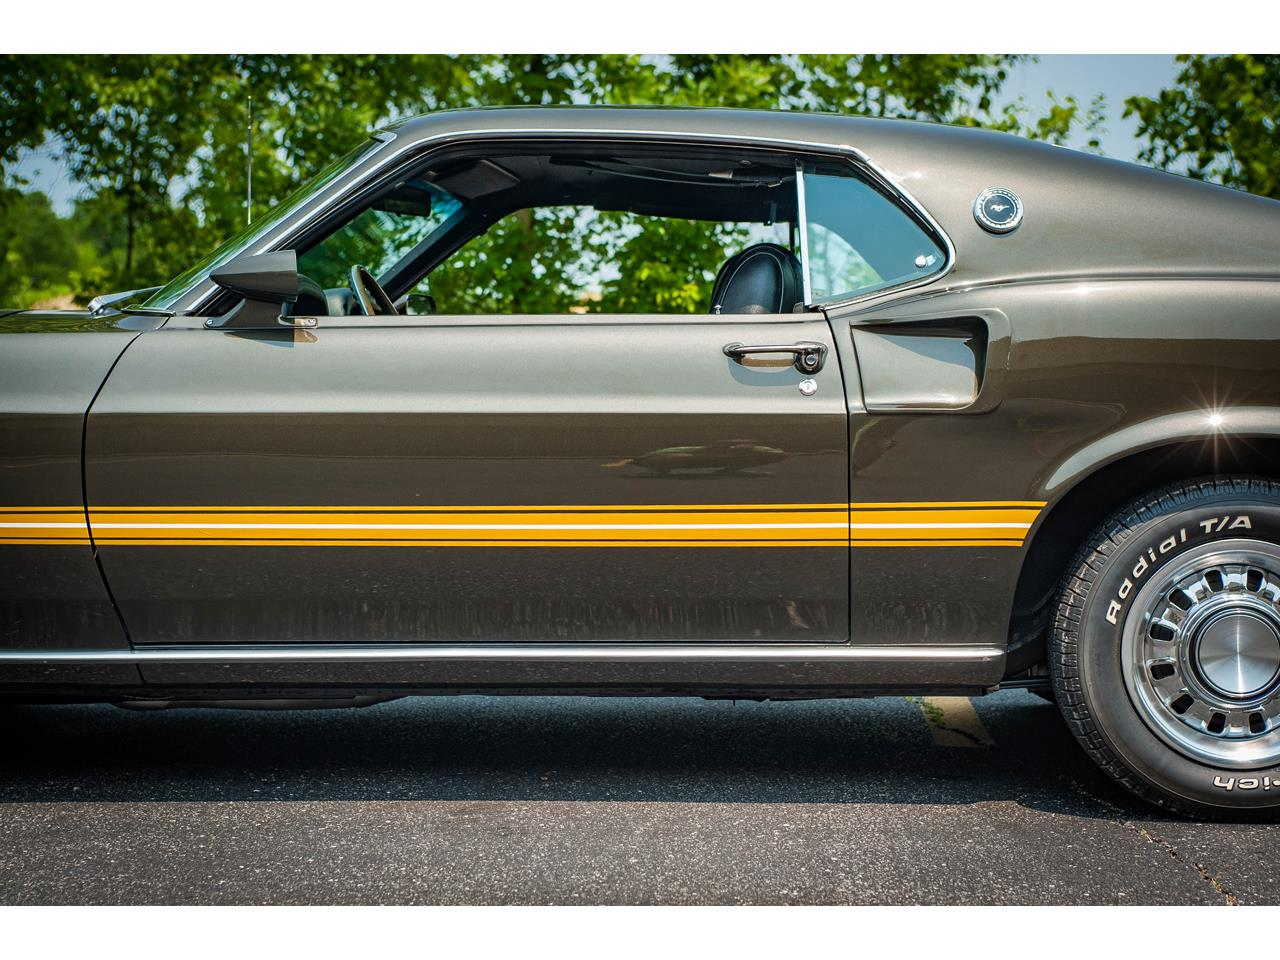 Large Picture of Classic 1969 Ford Mustang located in O'Fallon Illinois - $97,500.00 Offered by Gateway Classic Cars - St. Louis - QBA2